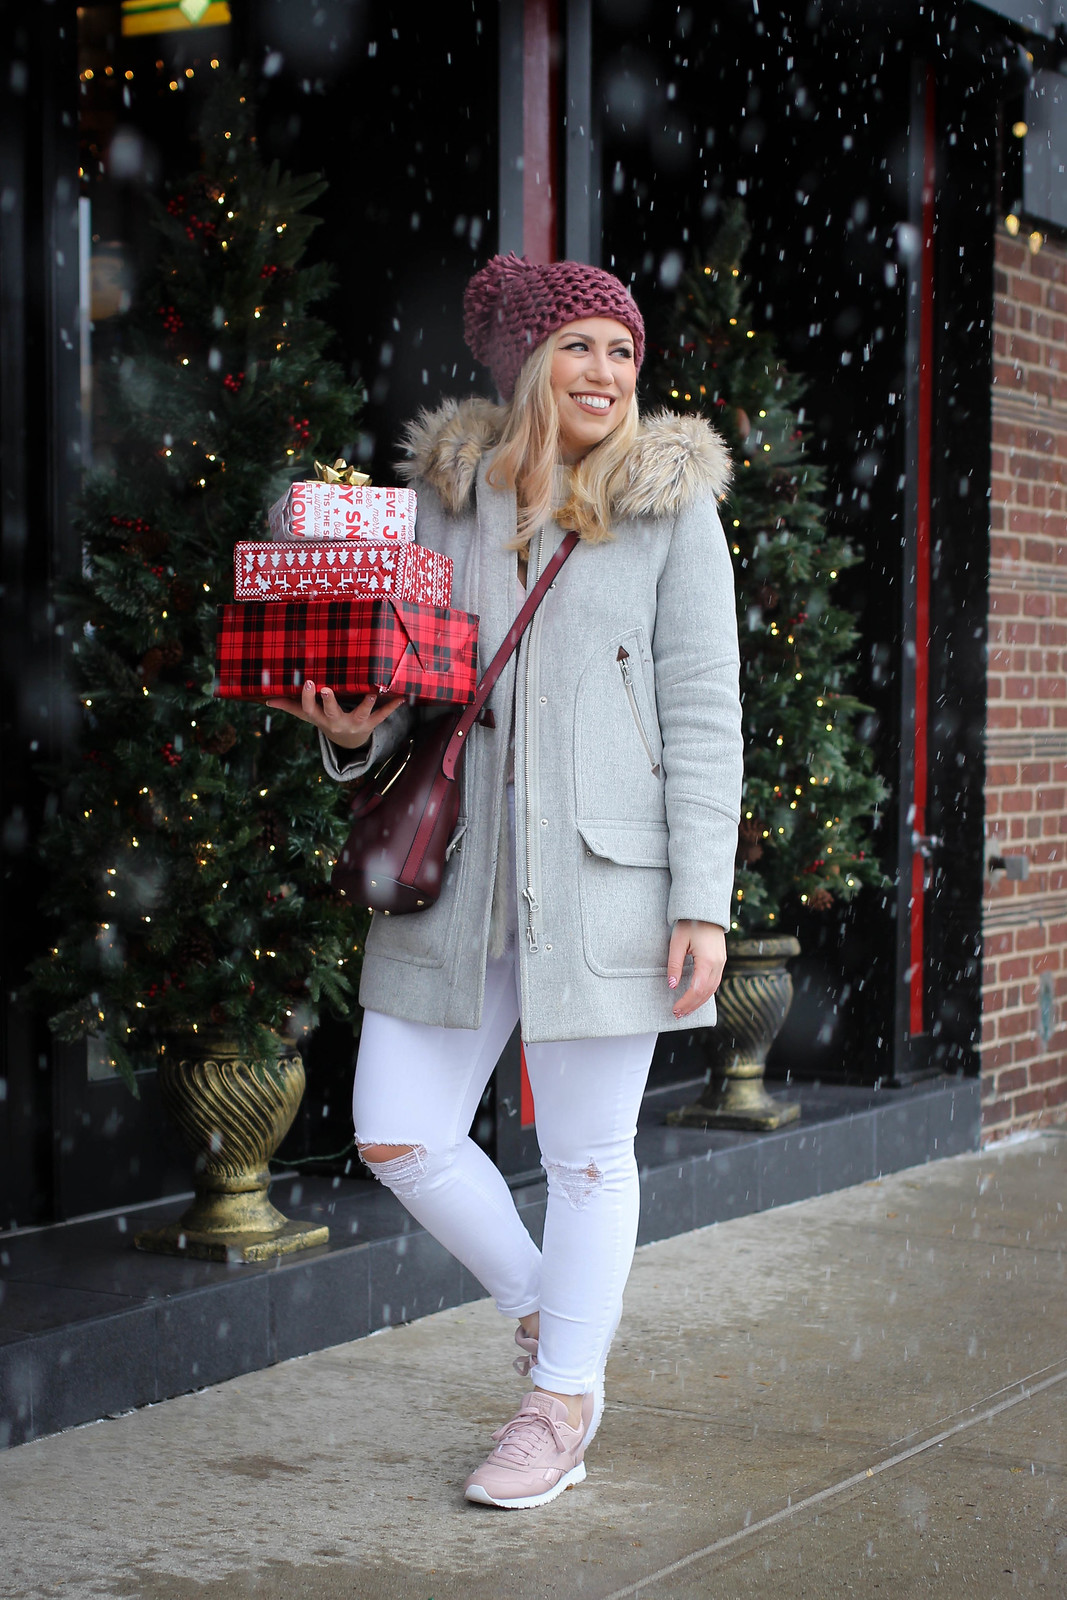 Winter White Outfit Snowing Bundled Up Pink Knit Pom Pom Hat